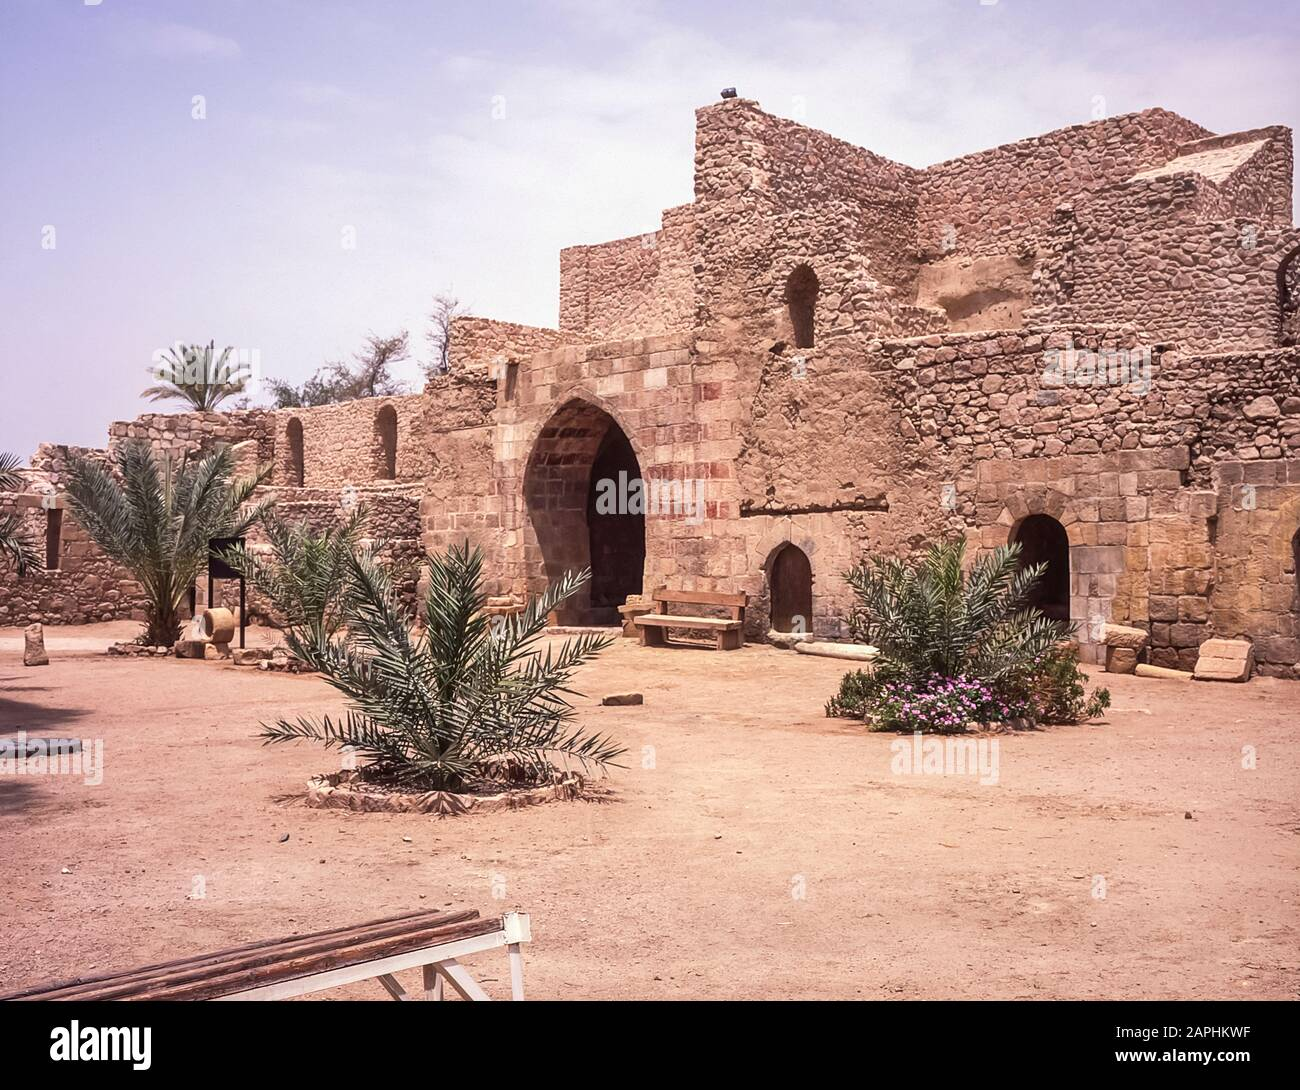 The Hashemite Kingdom of Jordan in the Middle East as it was in 1998. Jordan. The interior courtyard at the ruins of Aqaba Fortress at the Red Sea port of Aqaba originally being garrisoned by Turkish soldiers of the Ottoman Empire then being overthrown by the Arab tribes during the First World War led by T.E.Lawrence  better known as Lawrence of Arabia. Stock Photo